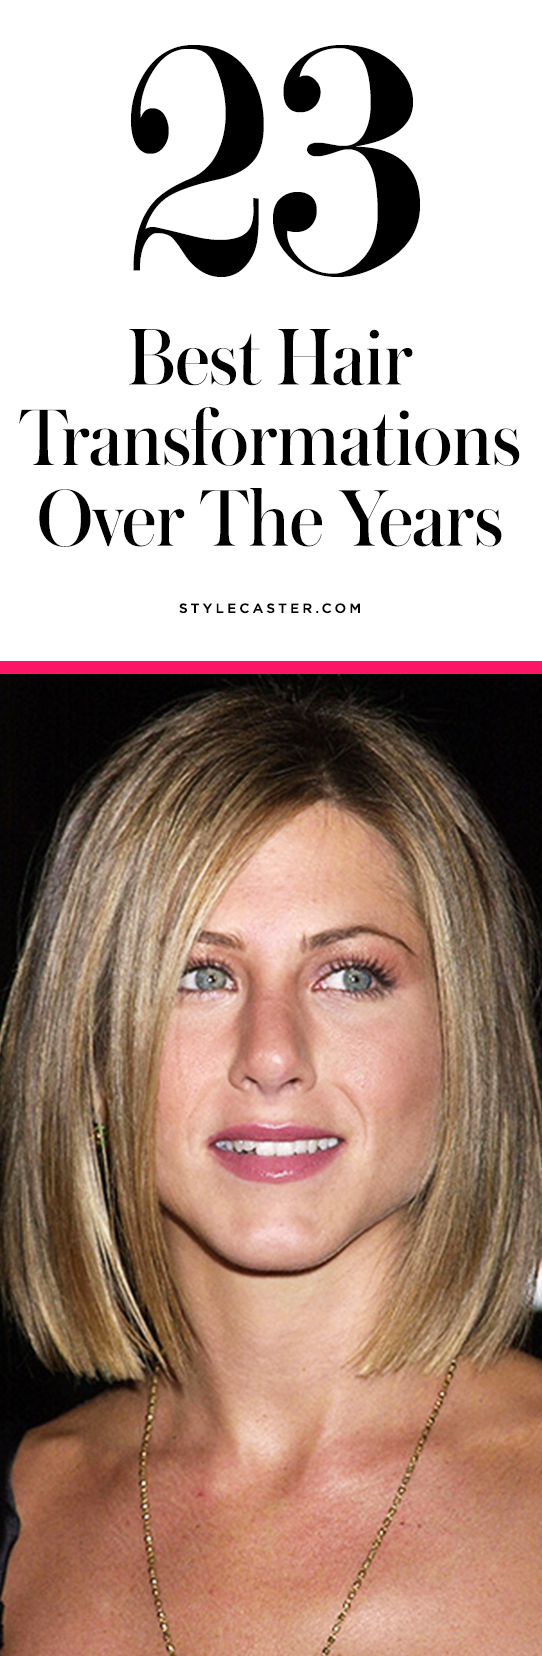 Jennifer Aniston's best hair looks | @stylecaster